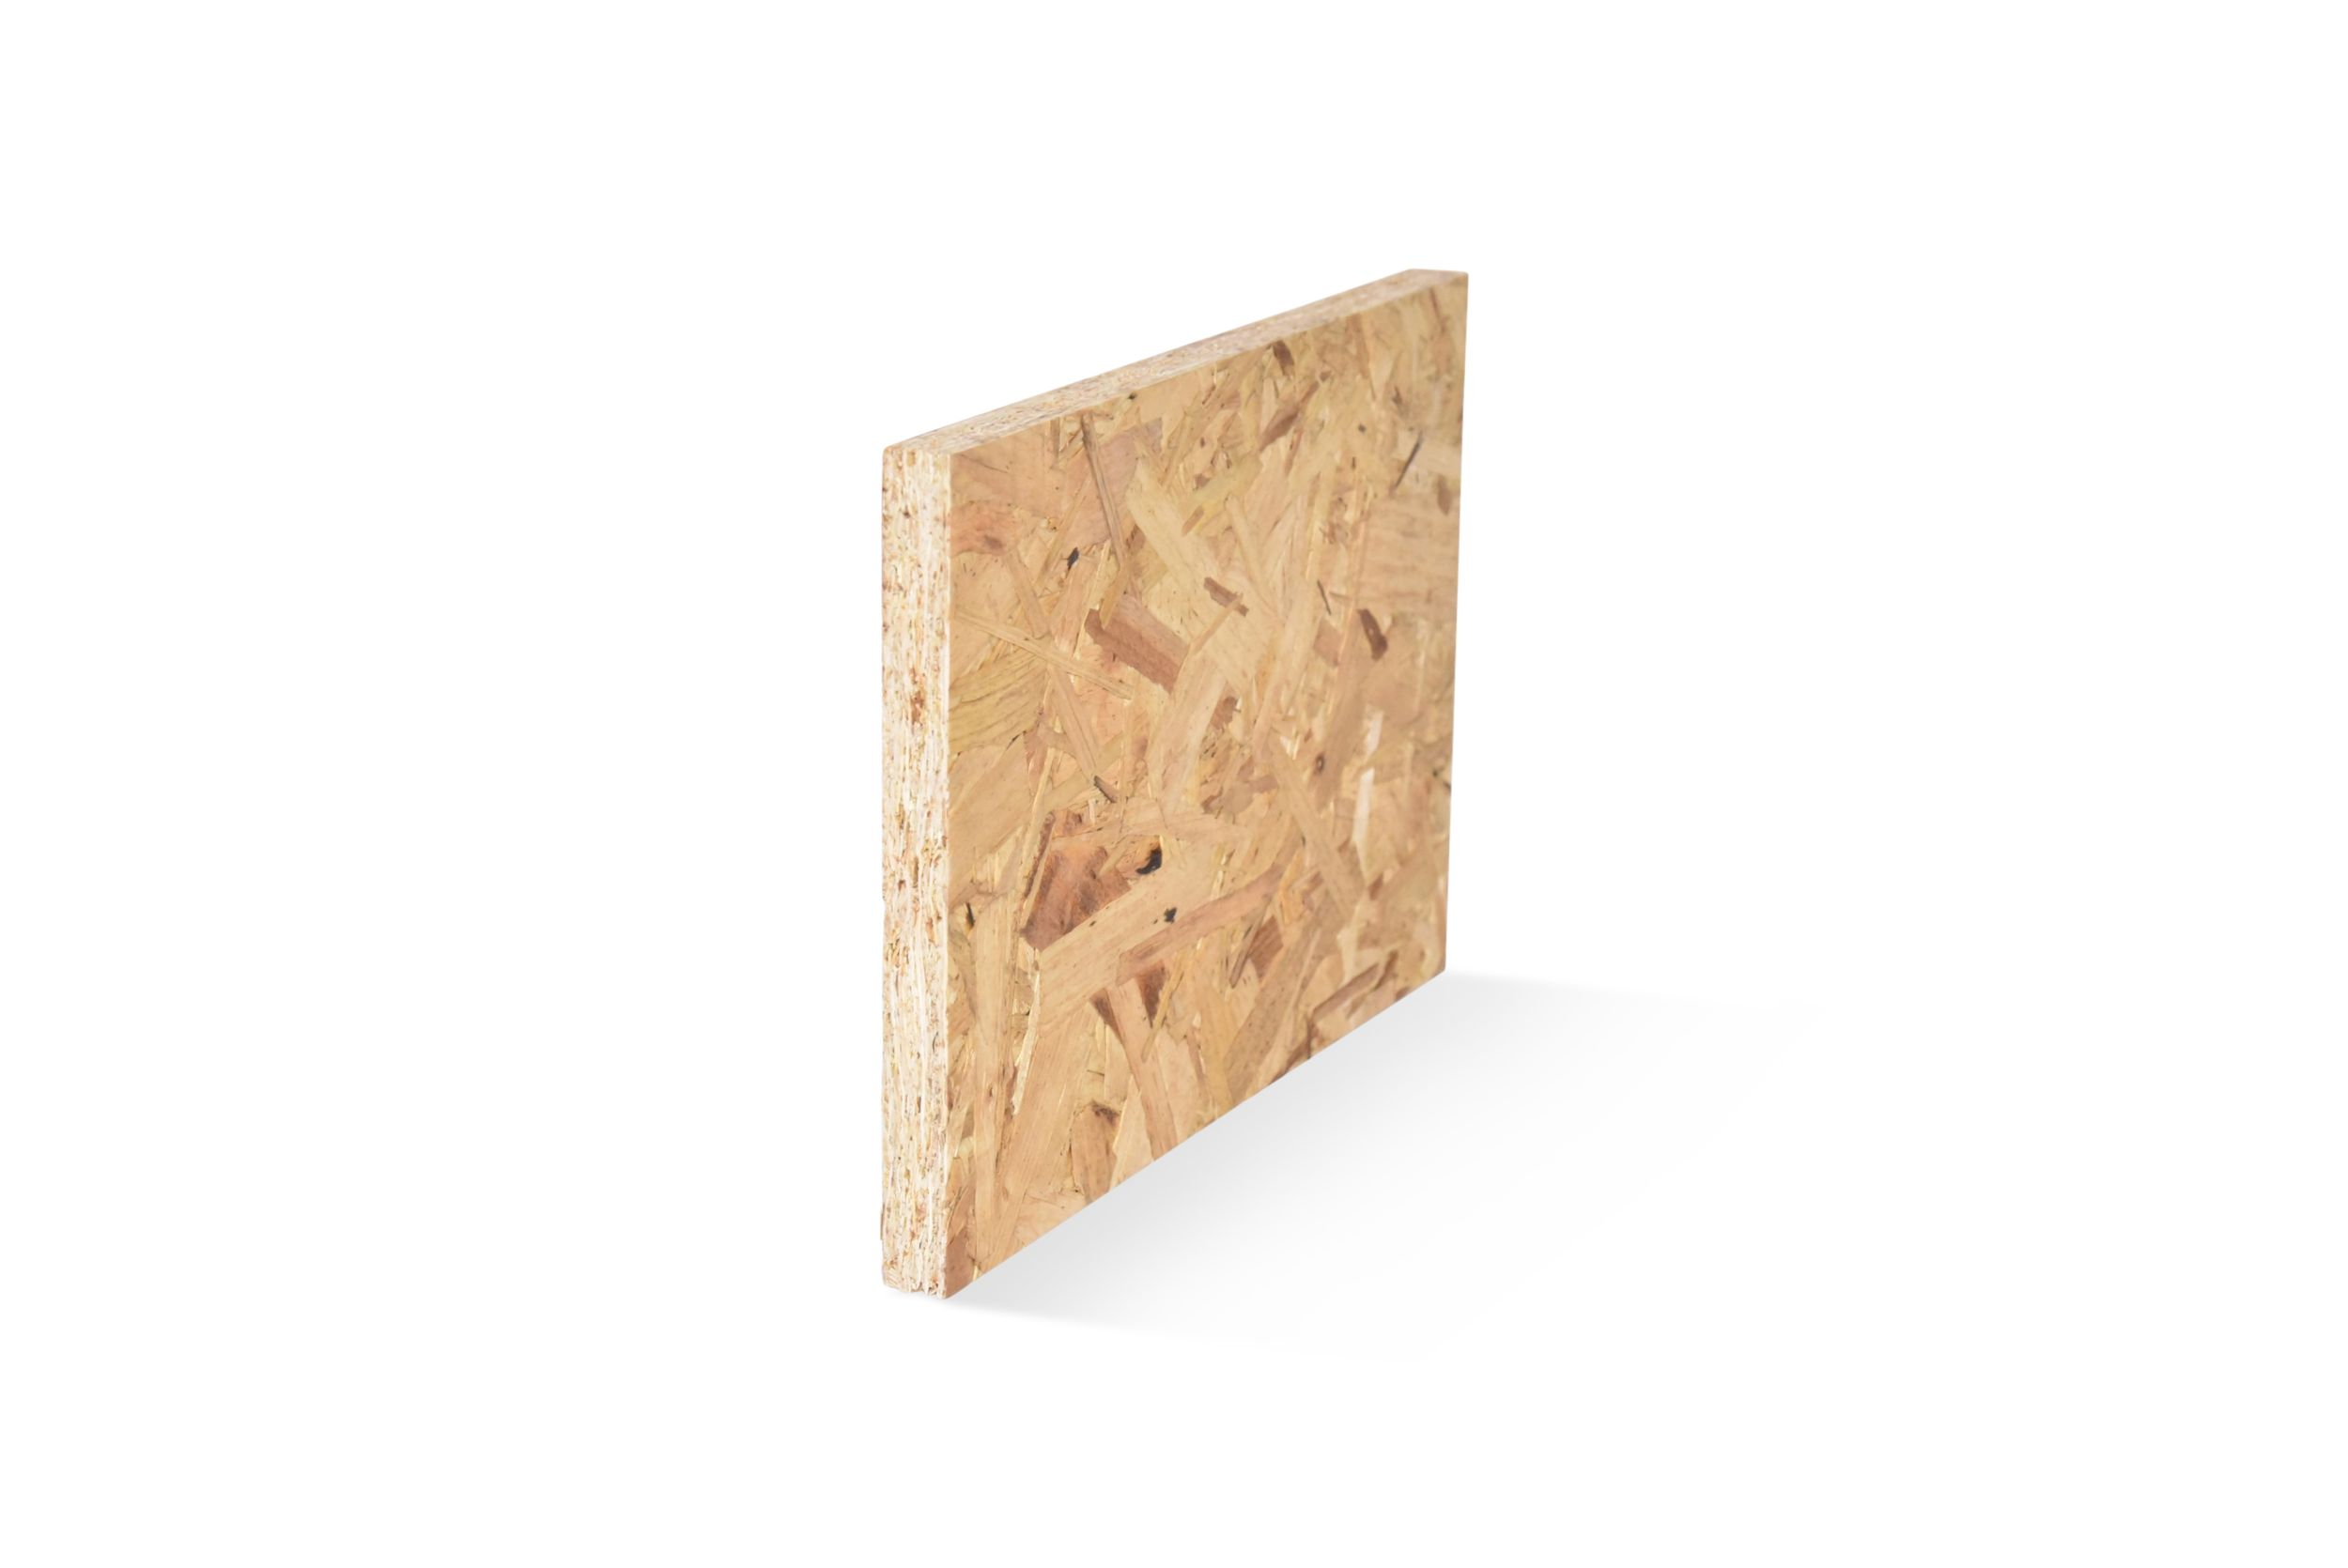 O.S.B. (Oriented Strand Board)